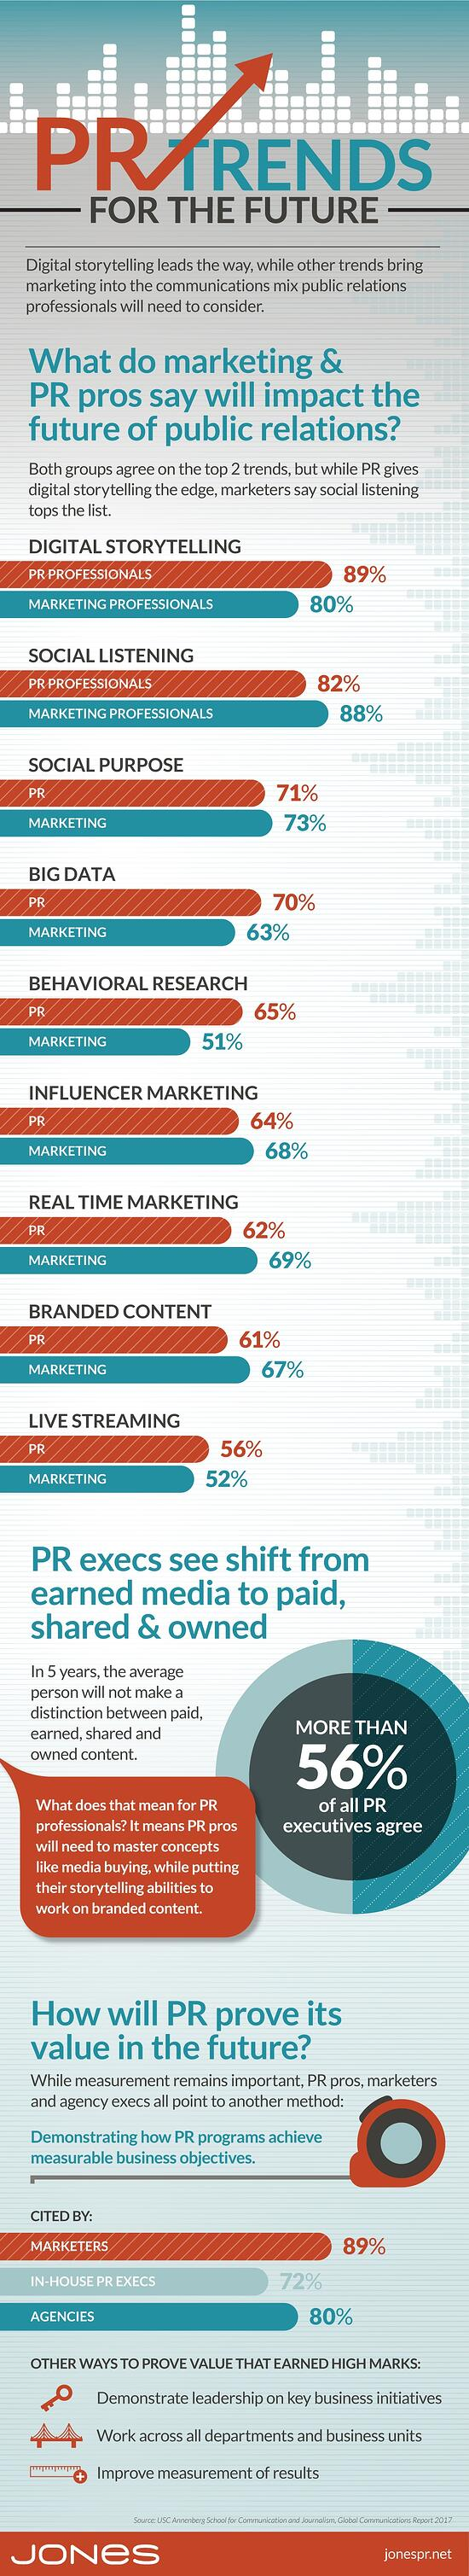 PR Trends for the Future (infographic)